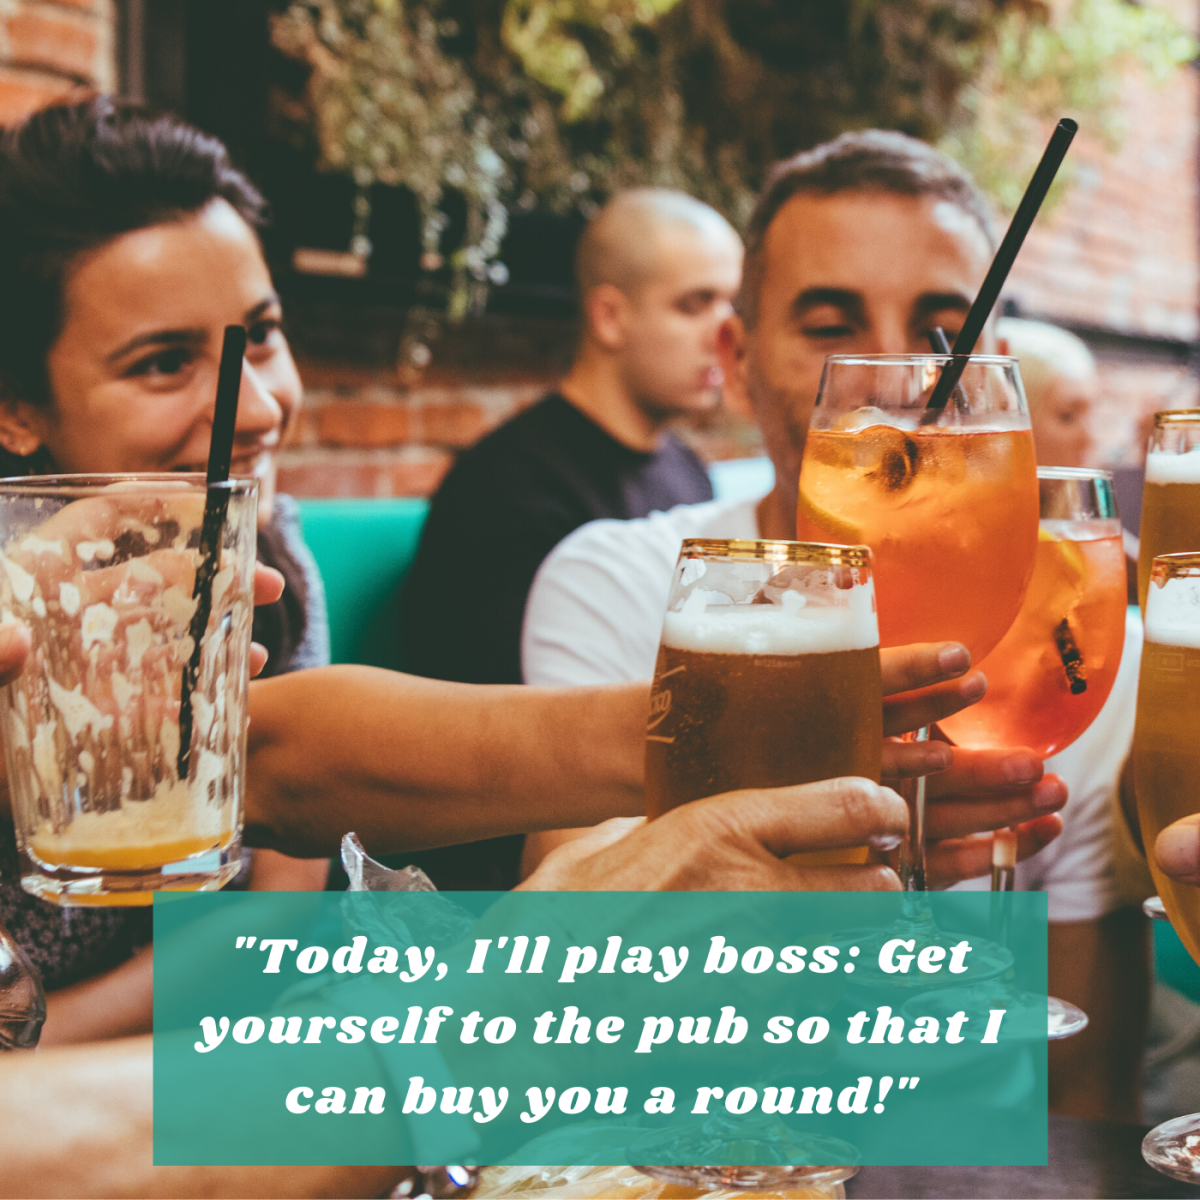 """""""Today, I'll play boss: Get yourself to the pub so that I can buy you a round!"""""""